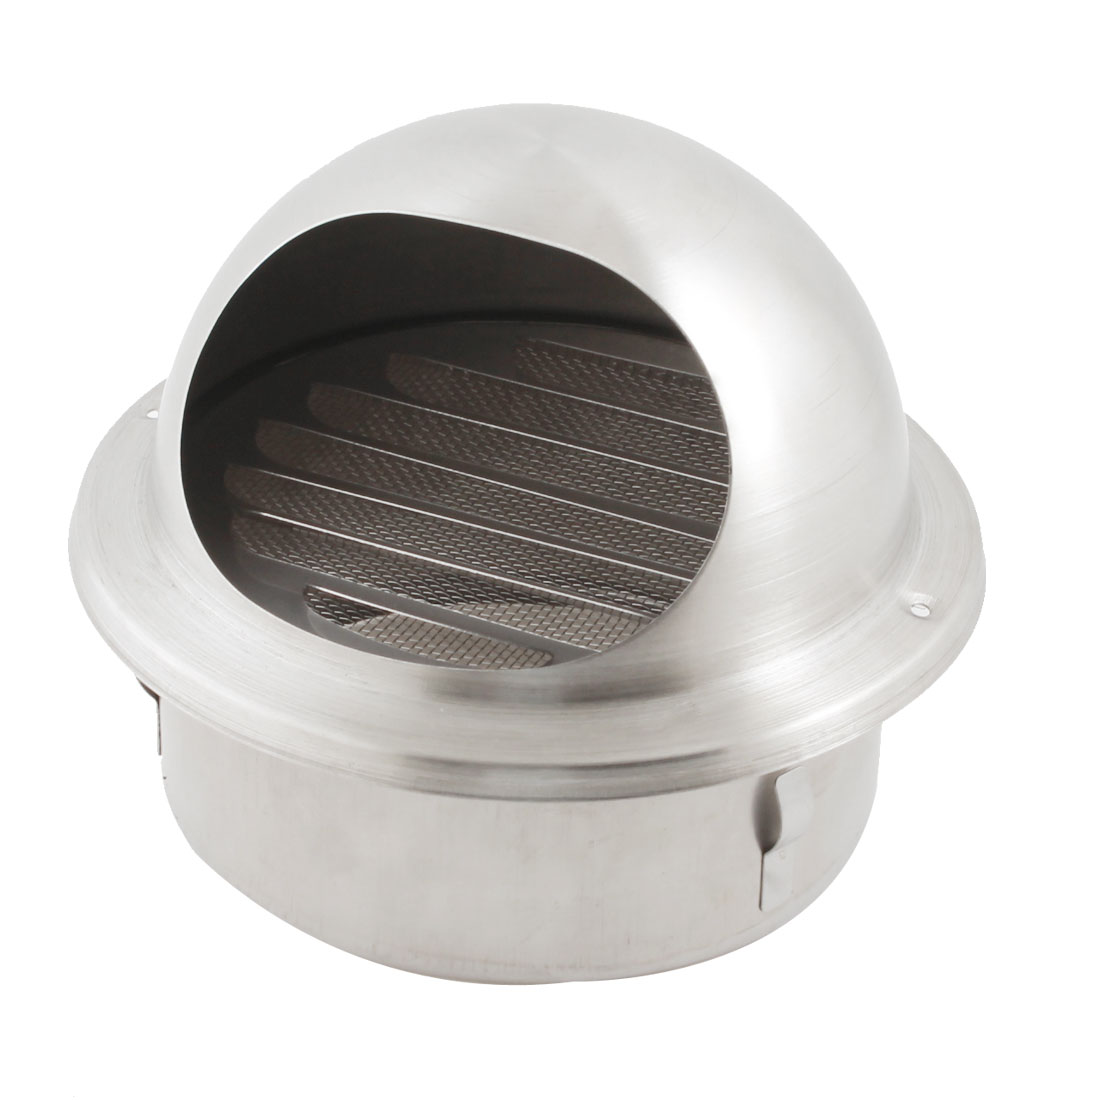 Kitchen Extractor Fan 304 Grade Stainless Steel Air Vent Outlet Grill w Mesh Louver for 125mm Ducting